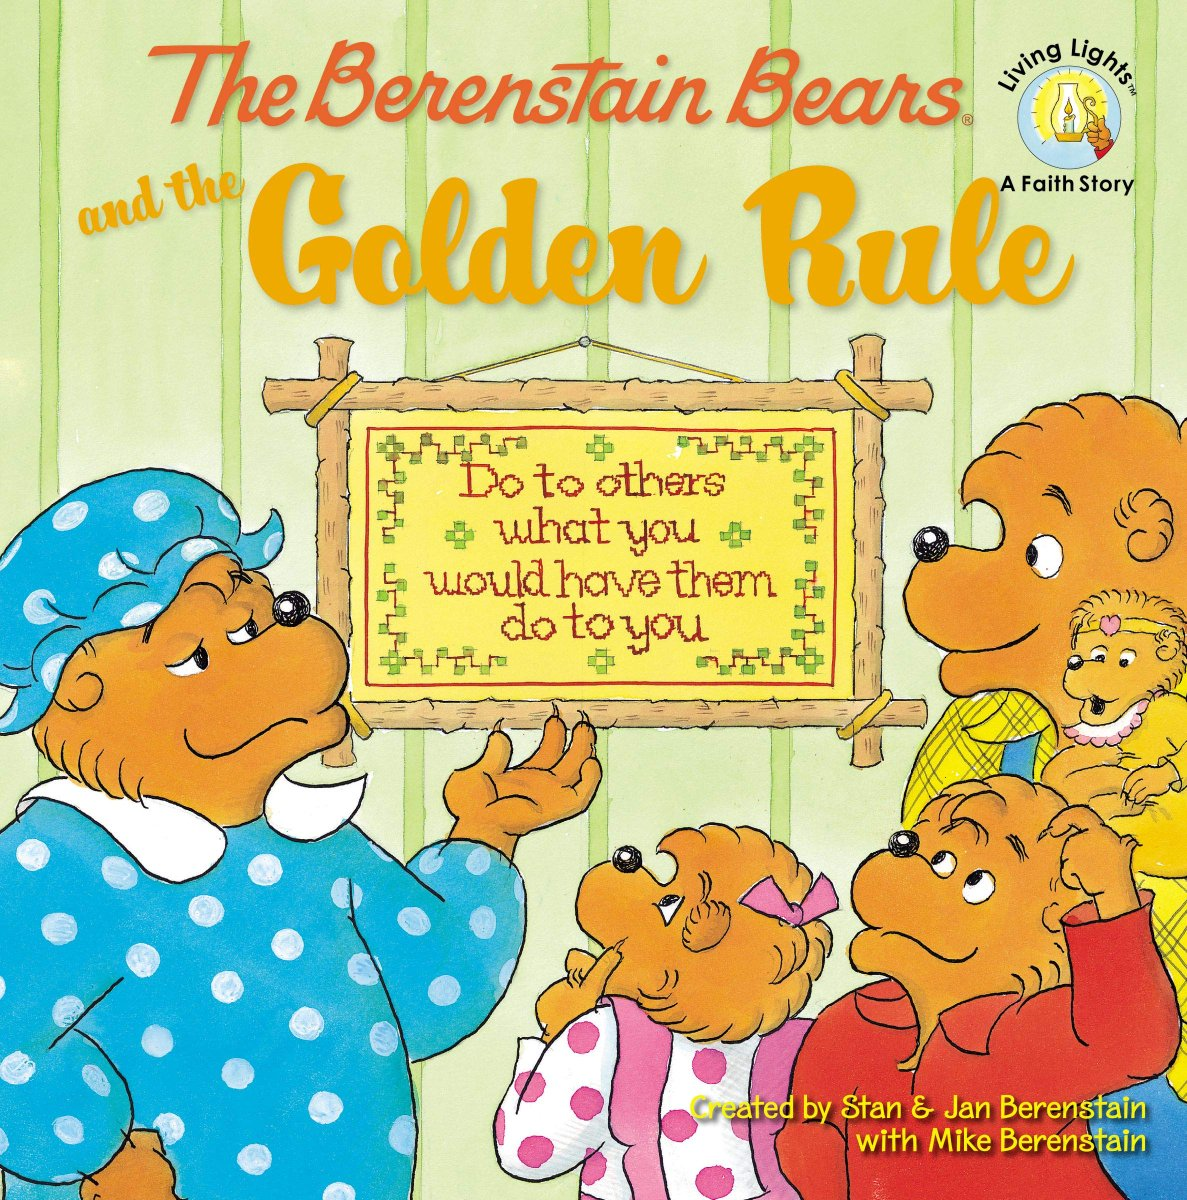 """Hey #Twitterverse! Remember great books from when we were kids like #TheBerenstainBears and the Golden Rule that taught us to """"Do to others what you would have them do to you."""" Between then & growing up - when do people forget the #GoldenRule applies to @Twitter too? Just asking! https://t.co/3HFsKLYeQb"""